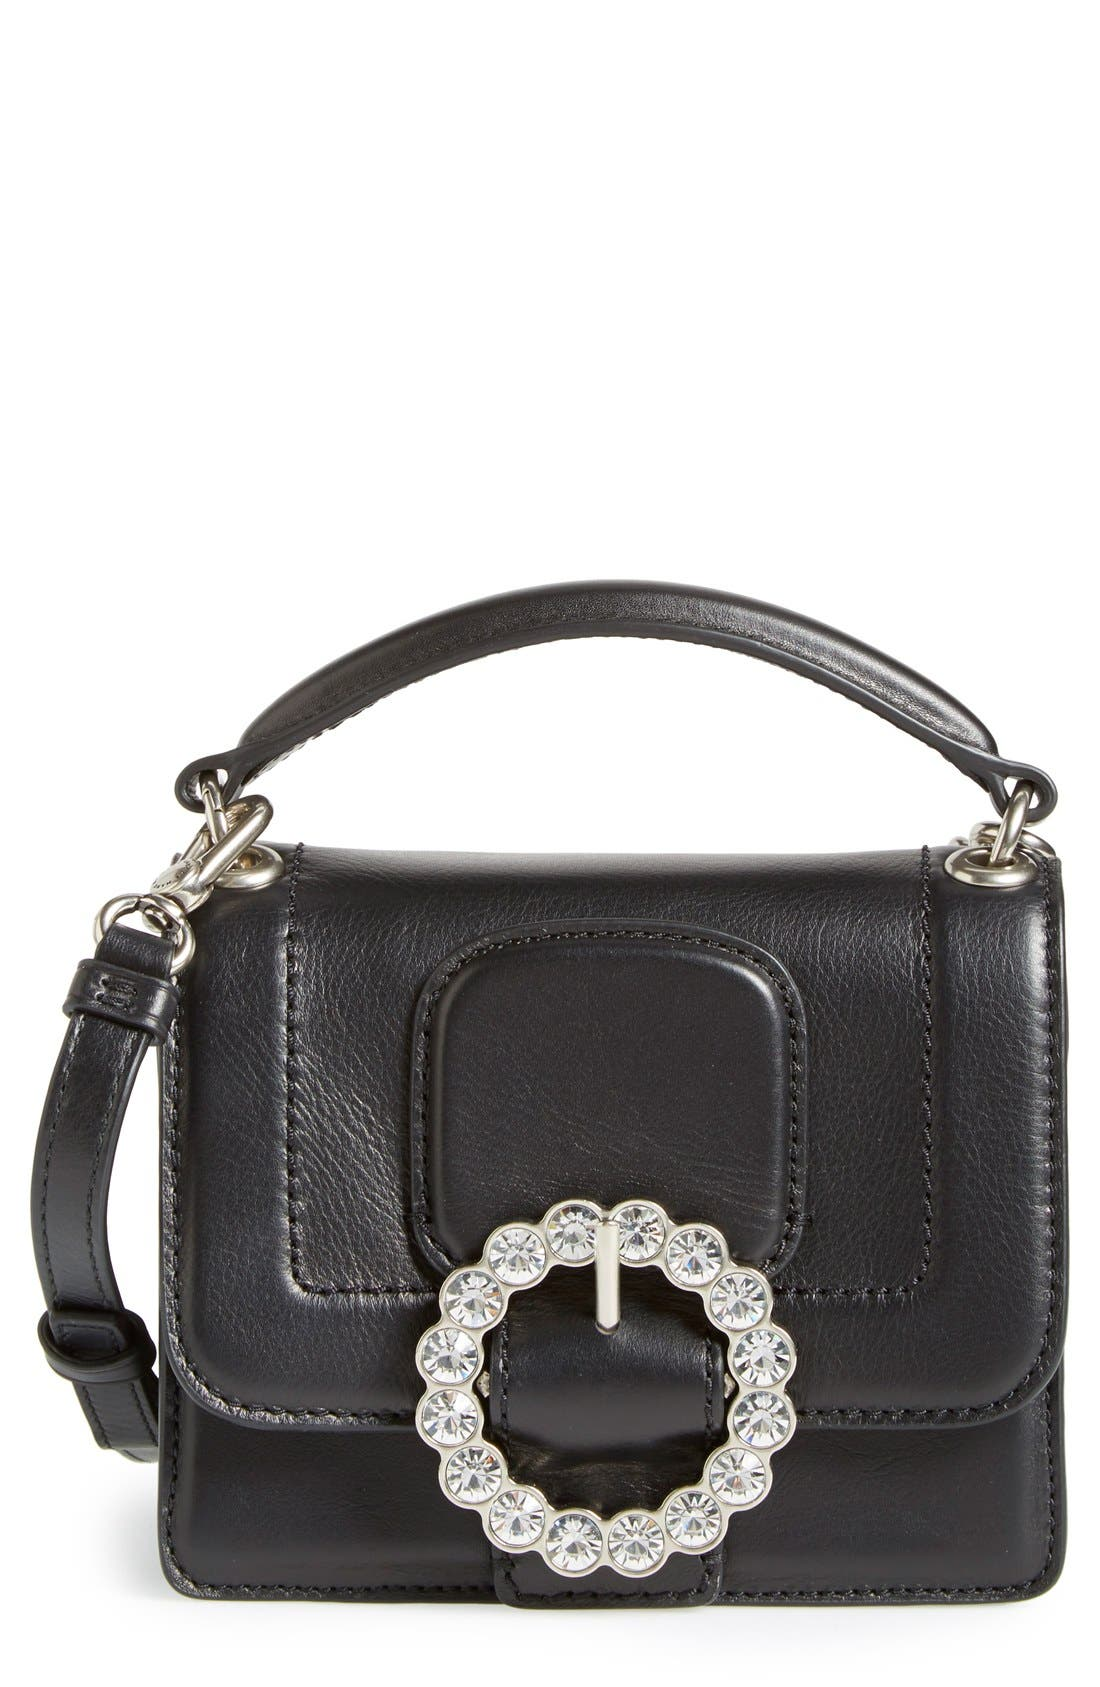 MARC JACOBS MARC BY MARC JACOBS 'The Box' Crossbody Bag, Main, color, 001